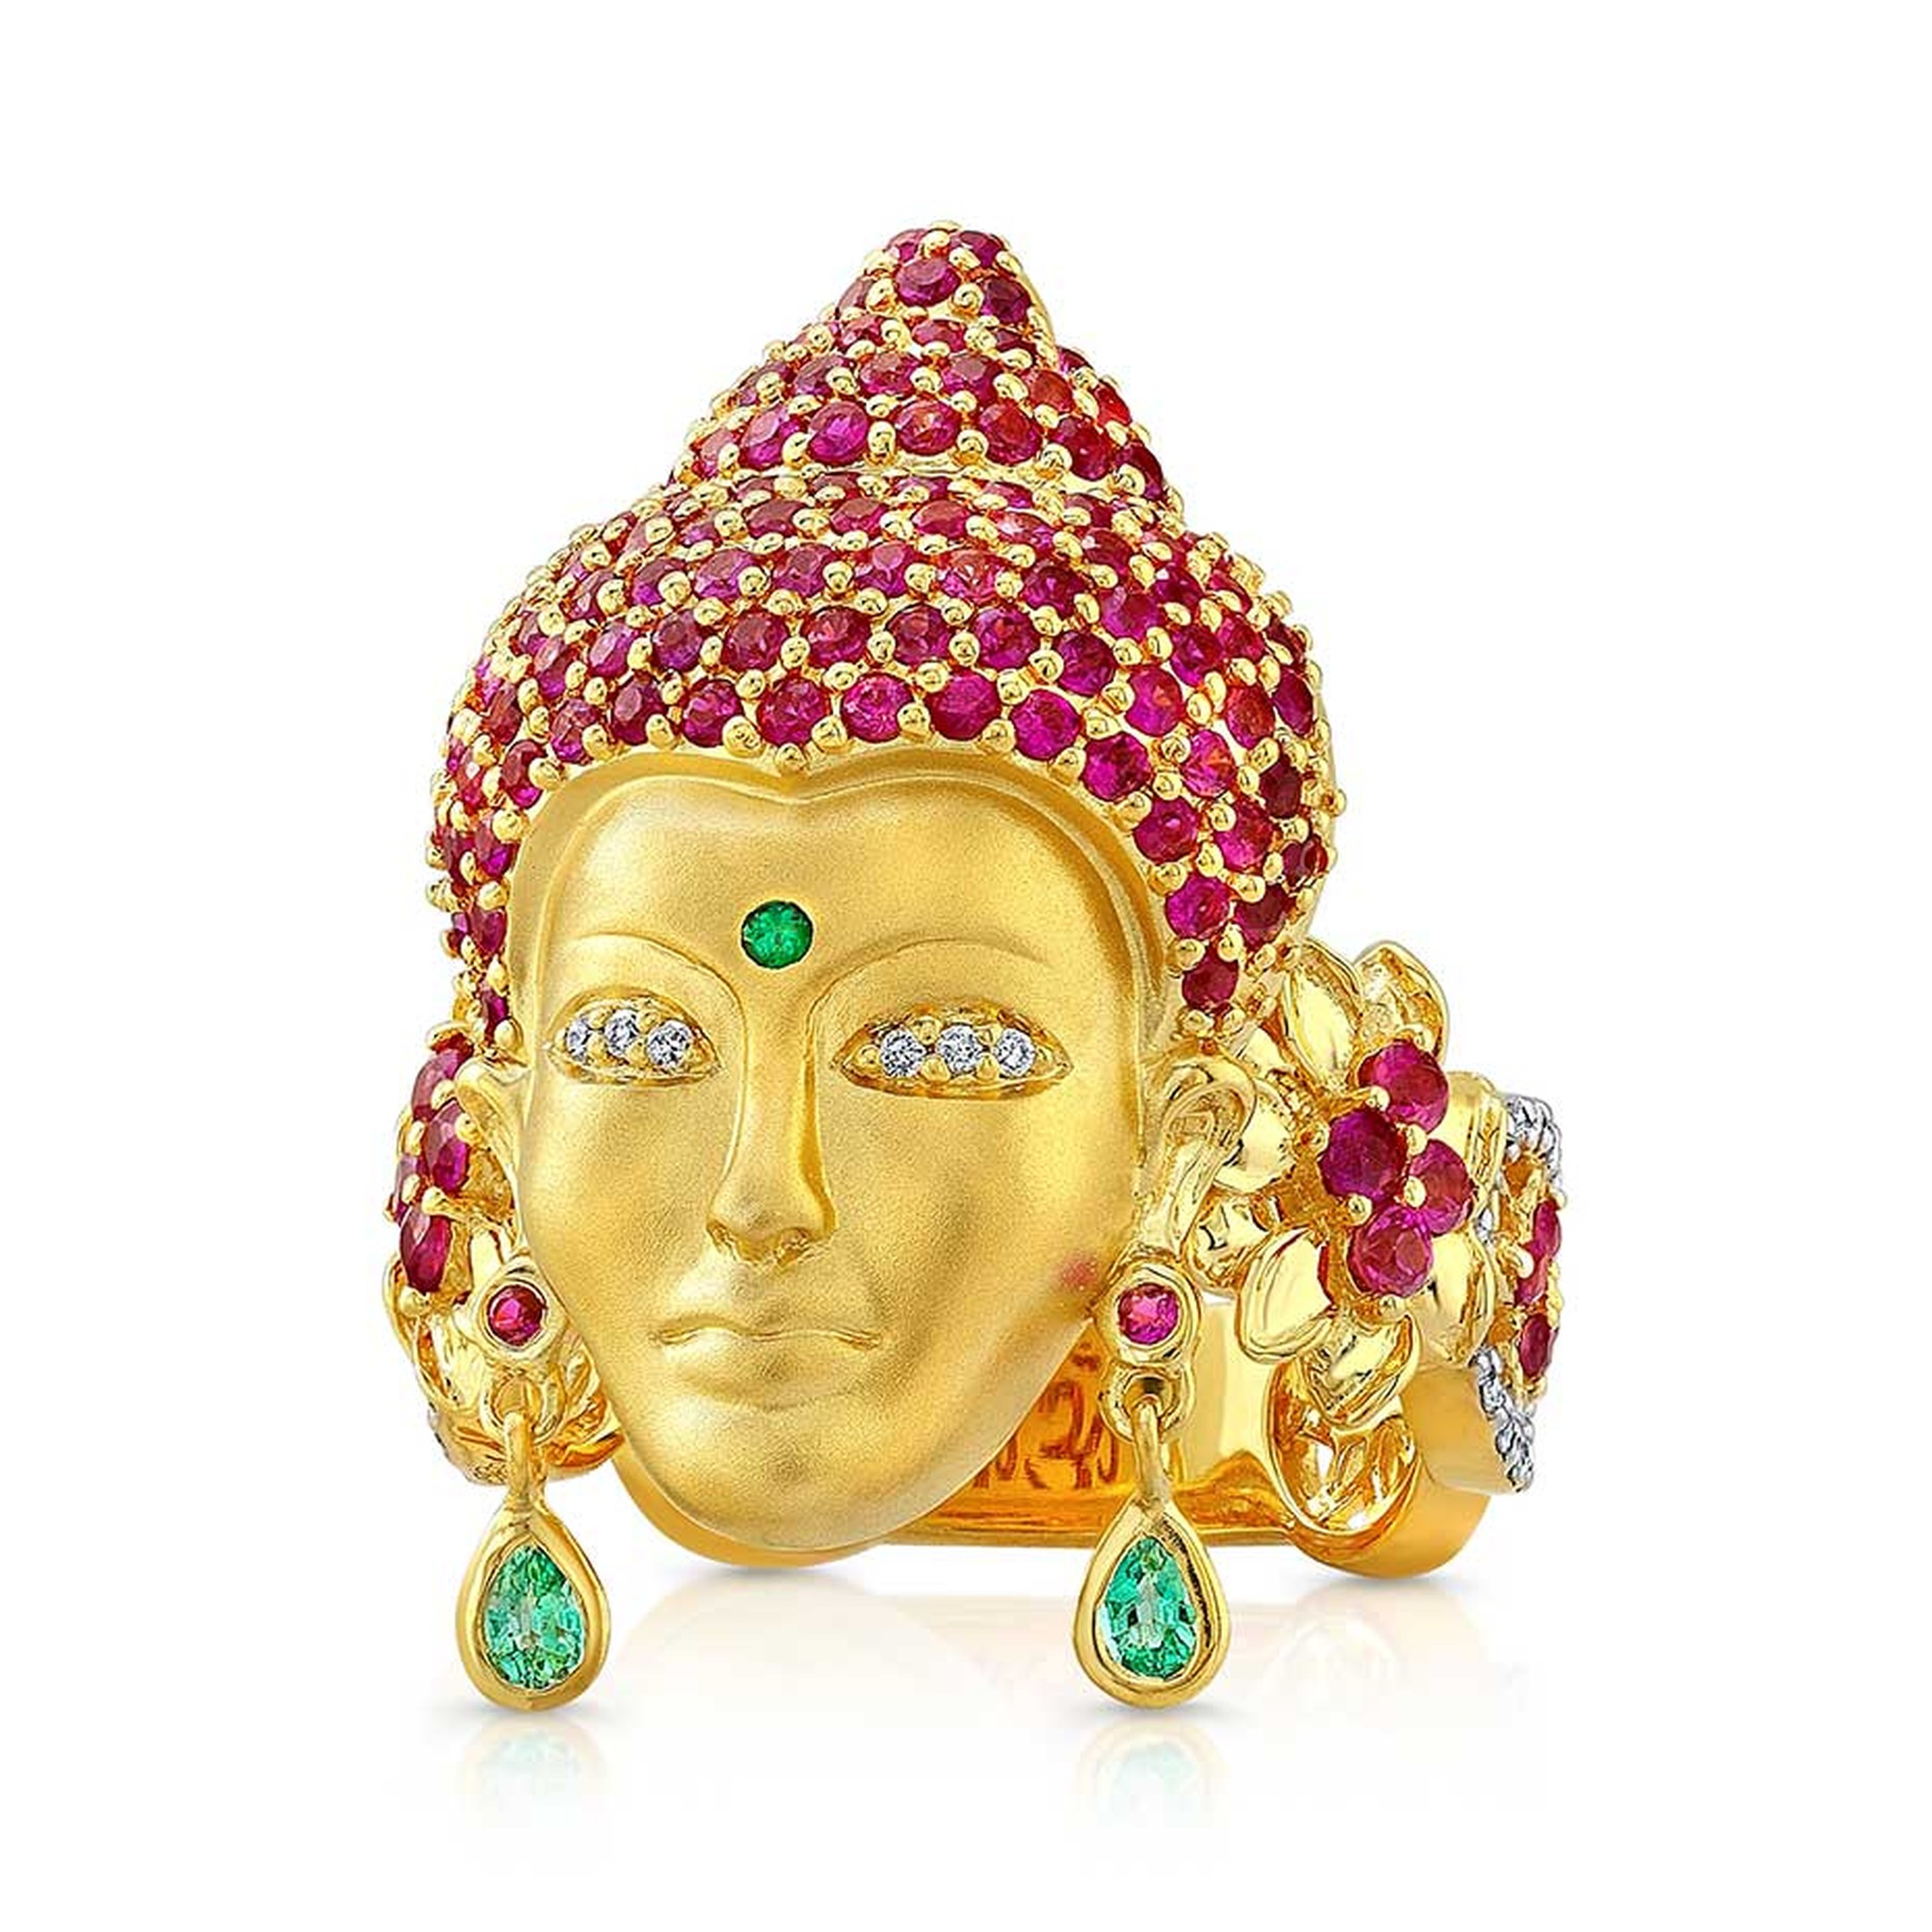 Buddha Mama gold ring with pink sapphires and emeralds.